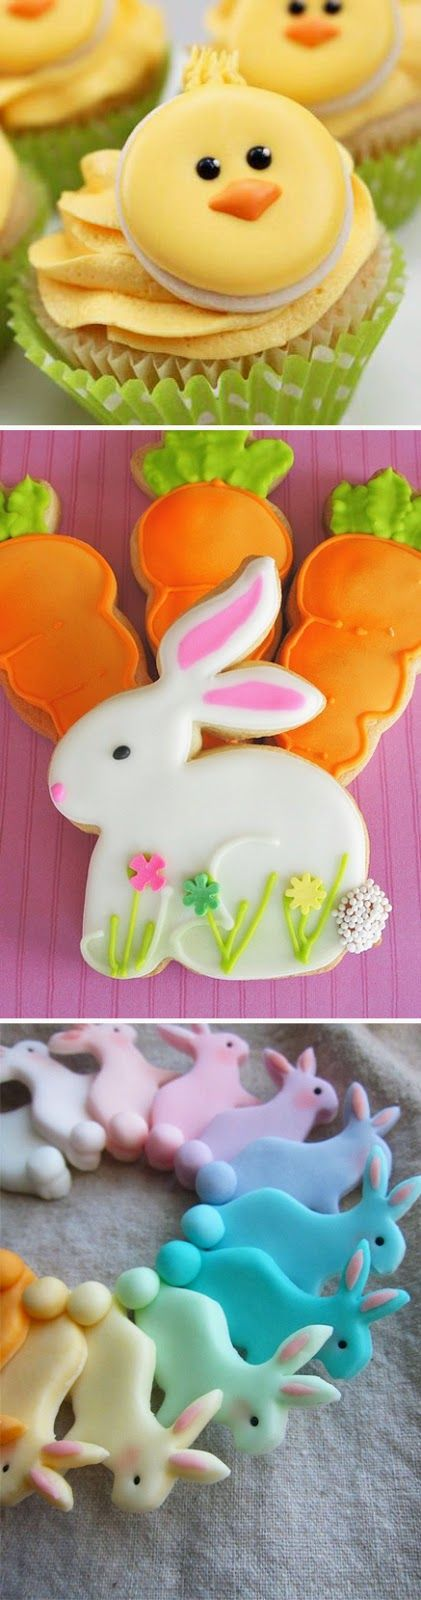 Chick Cupcake   //   Bunny Cookies   //    Rainbow Bunny Cookies    I found these beautiful, Easter and Spring-Inspired Treats on this boar...